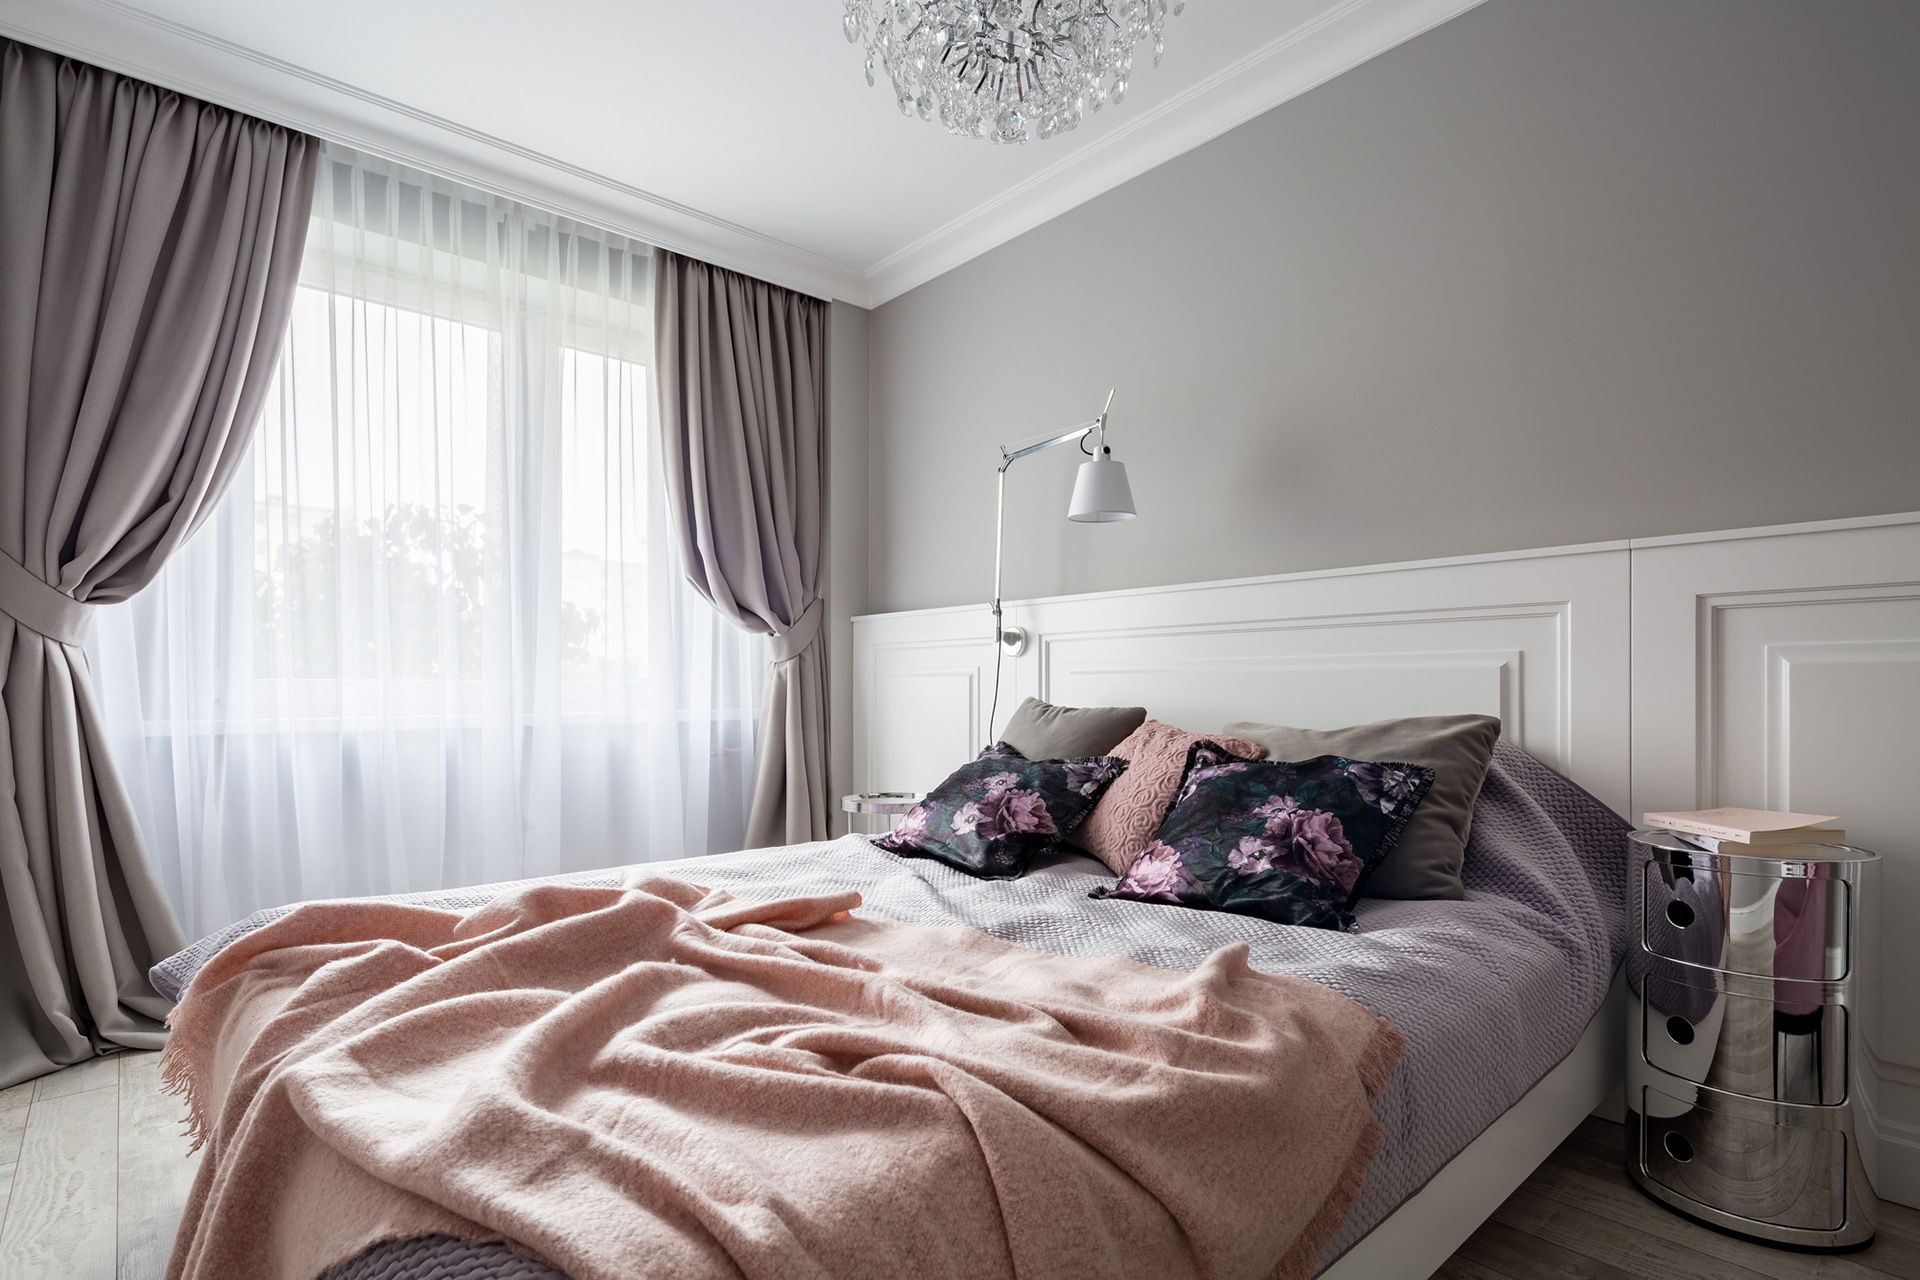 Bedroom Curtains to Match Window